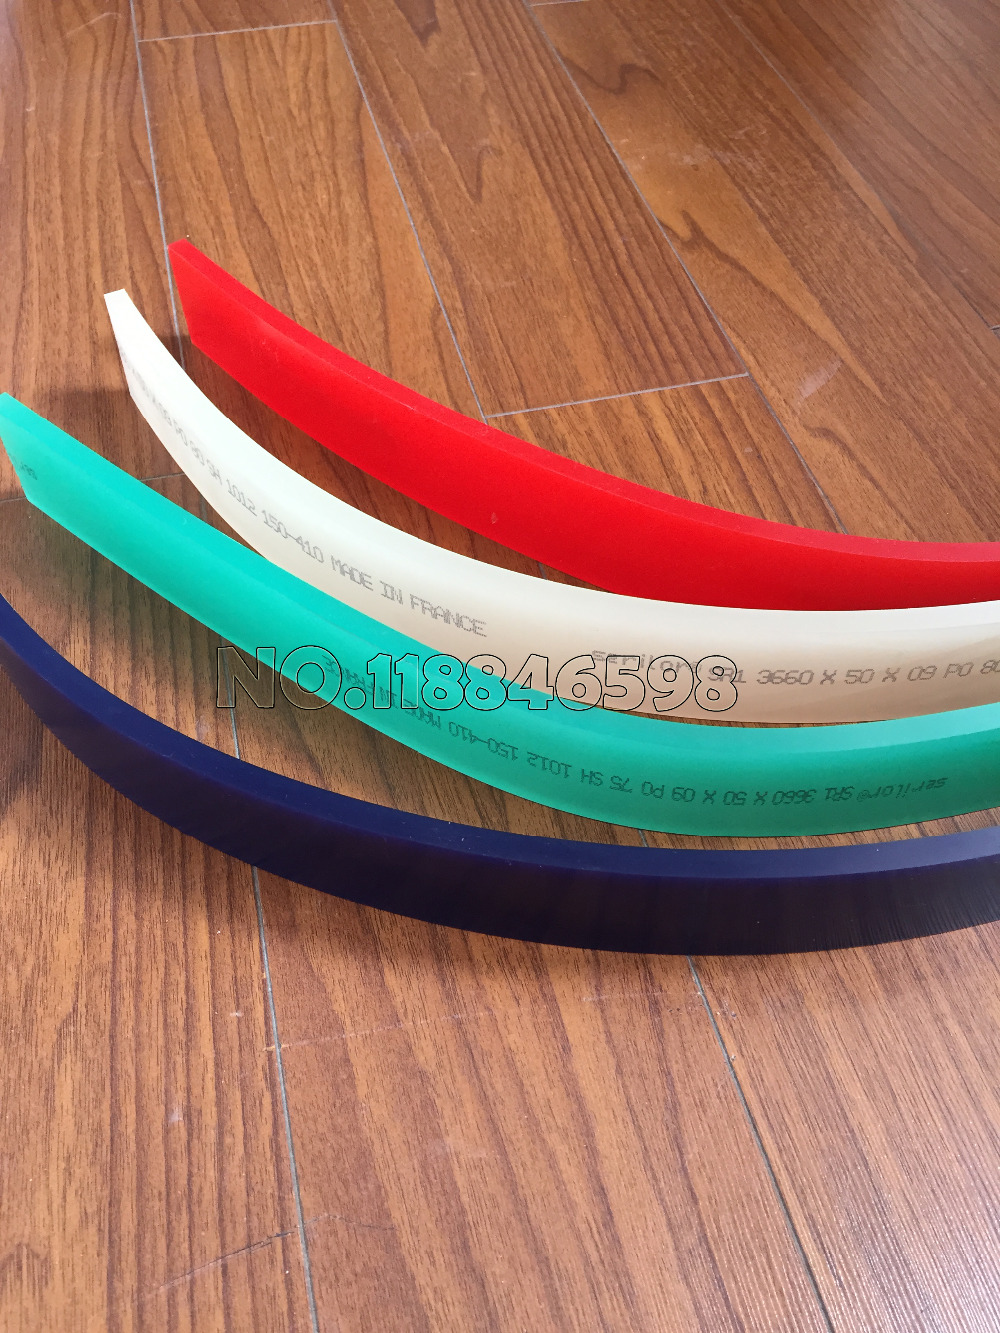 25MM(Width)x5MM(Thickness)x600MM(Leng) Screen Printing Squeegee Scraper Strips Silk Squeegee Blade France 65/85/75 Durometers